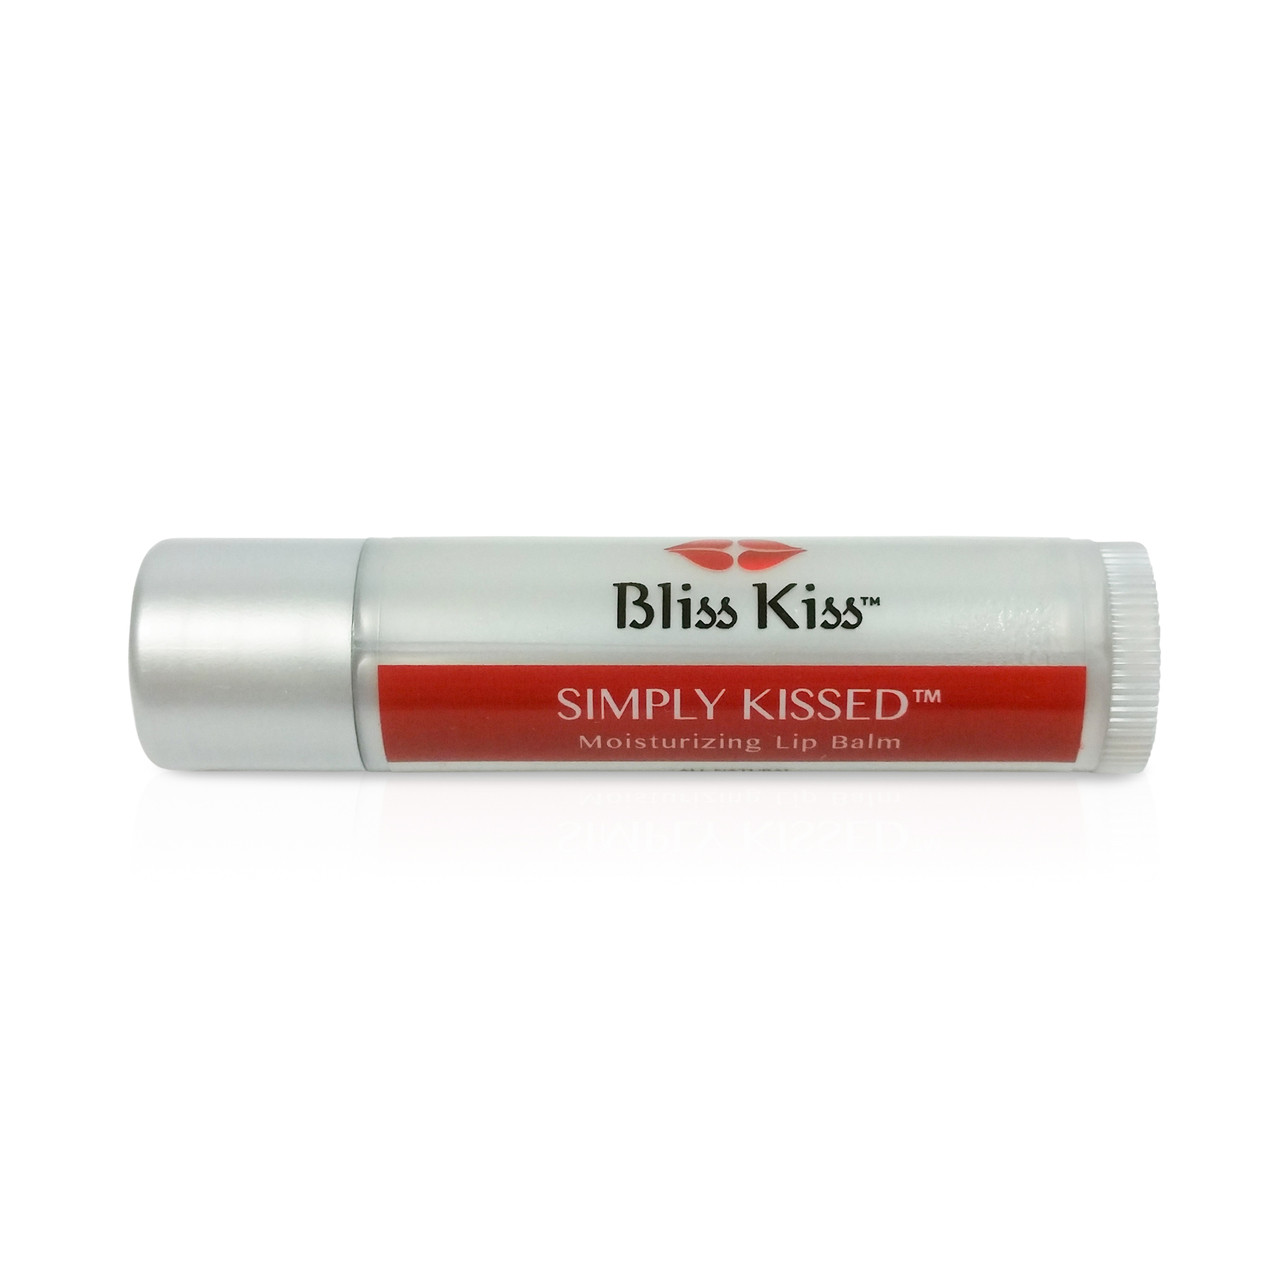 Simply Kissed™ Moisturizing Lip Balm